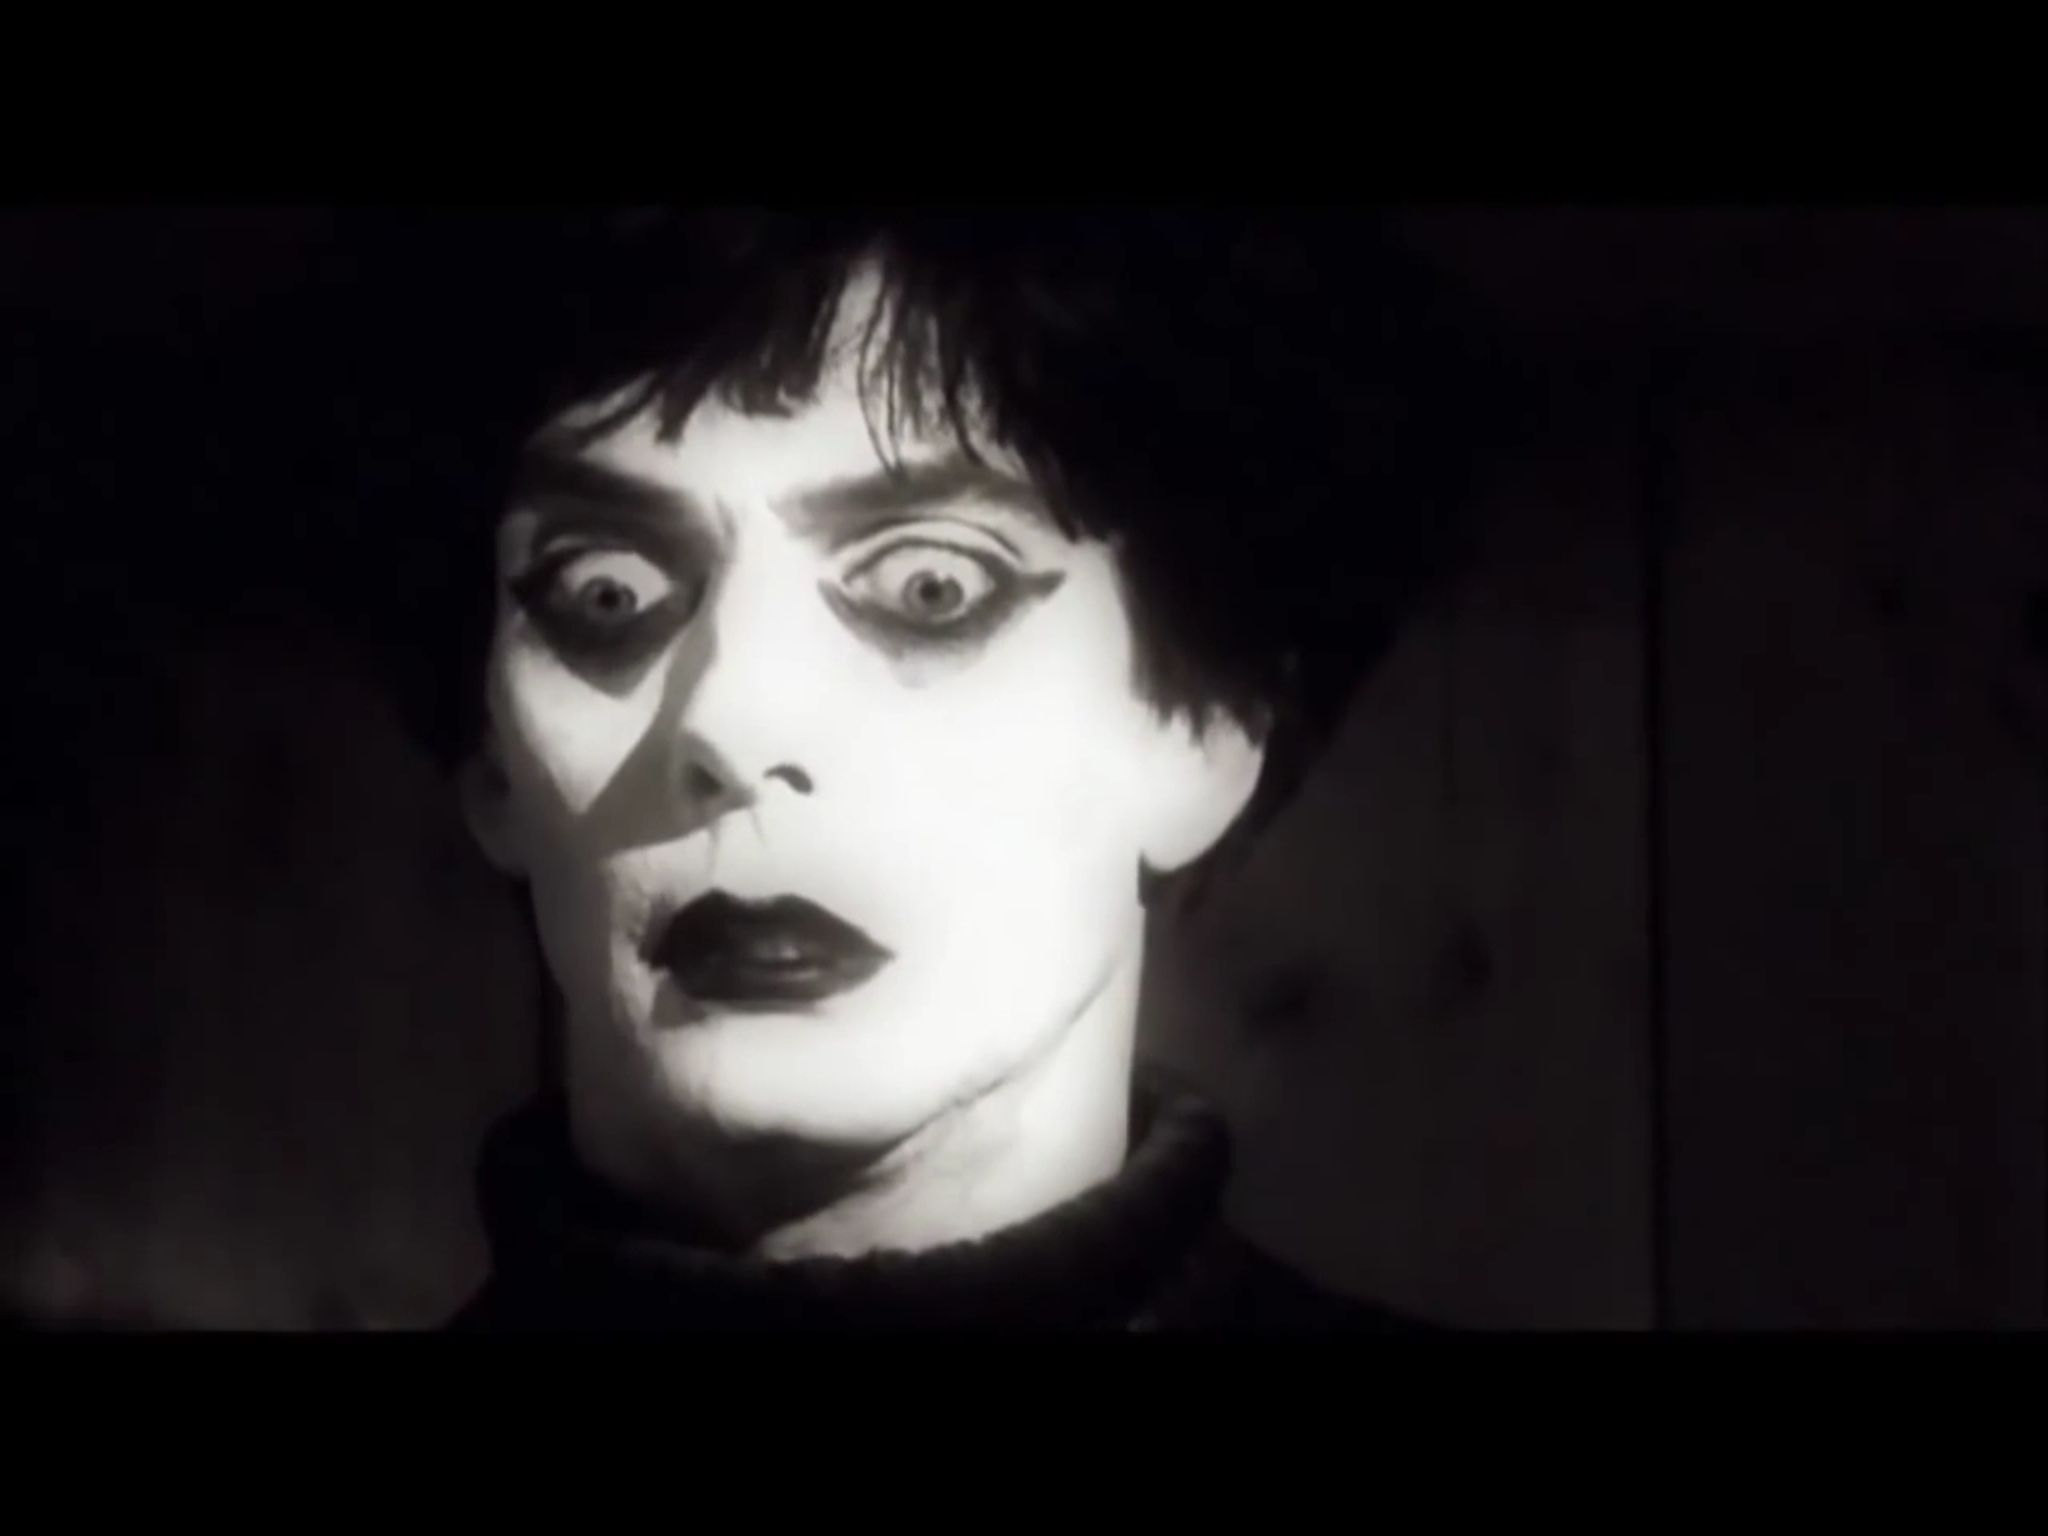 expressions in horror dr caligari and These films were a major contributor to the horror genre and  fritz lang noted that the it was his sled aspect of the cabinet of dr caligari stemmed from their .